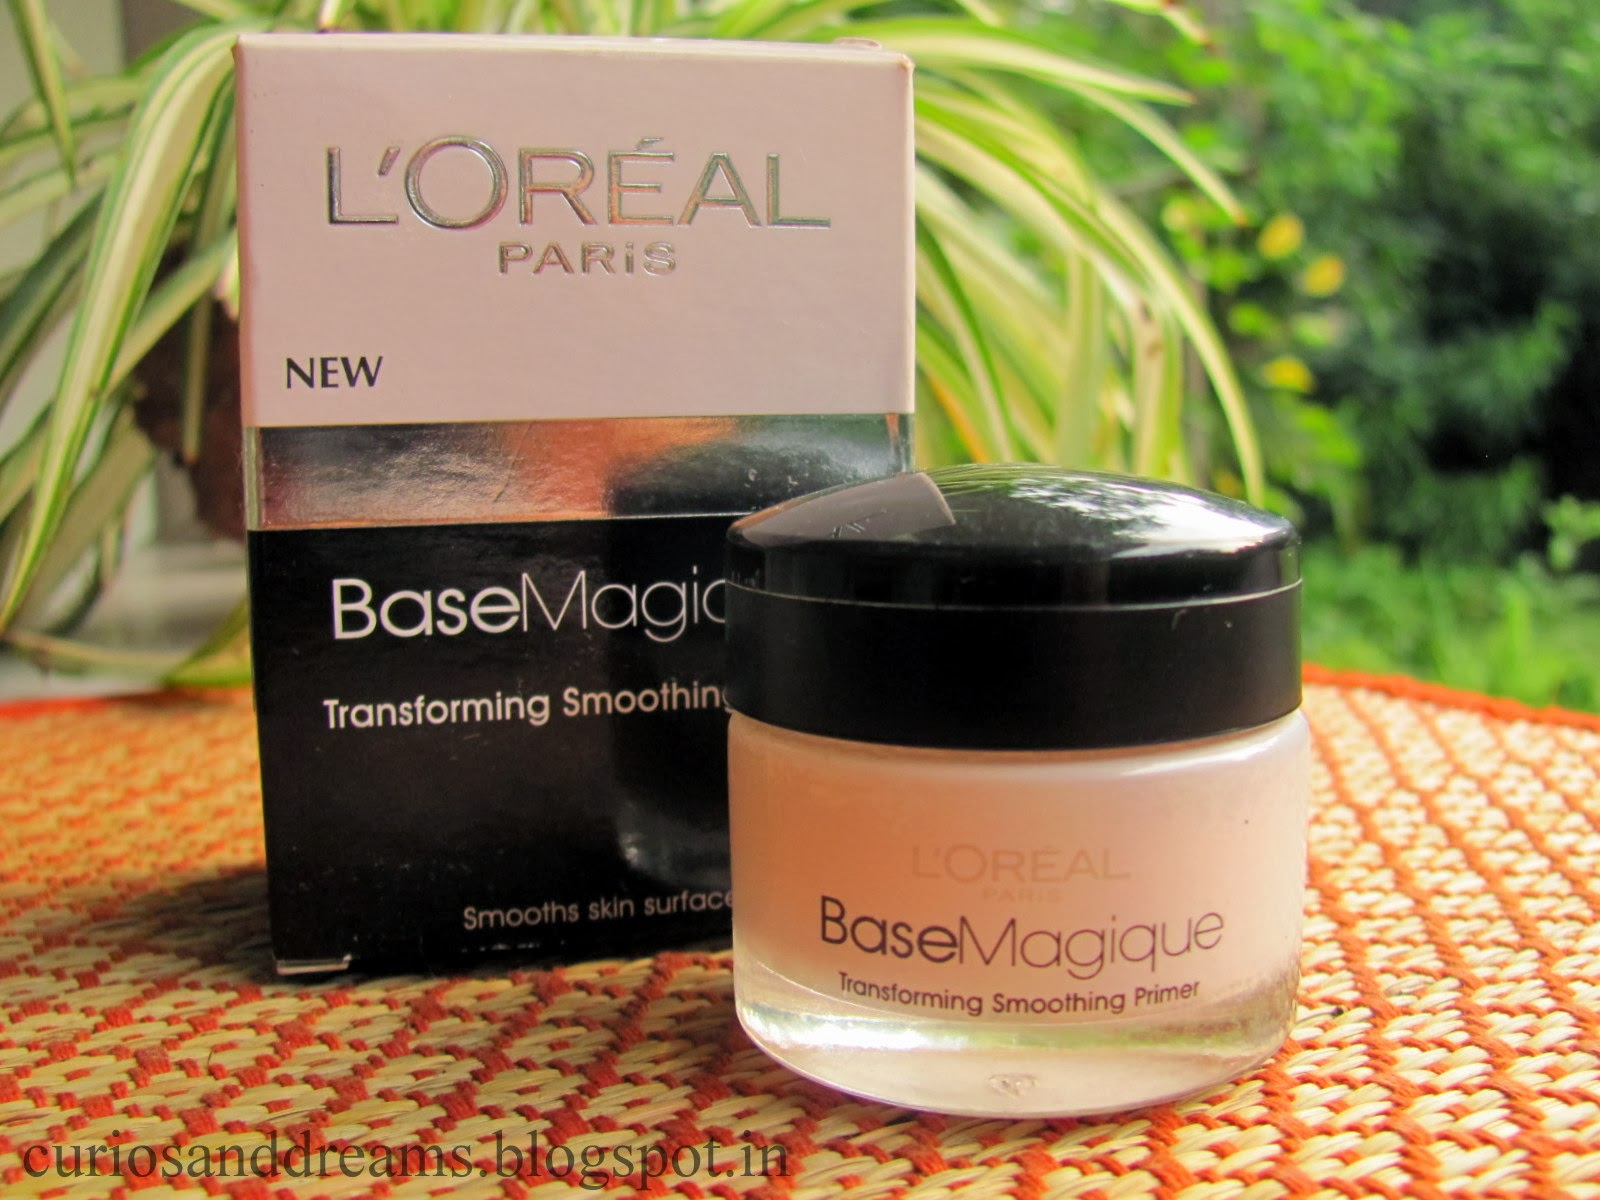 Loreal Primer review , L'oreal Paris Base Magique Transforming Smoothing Primer Review